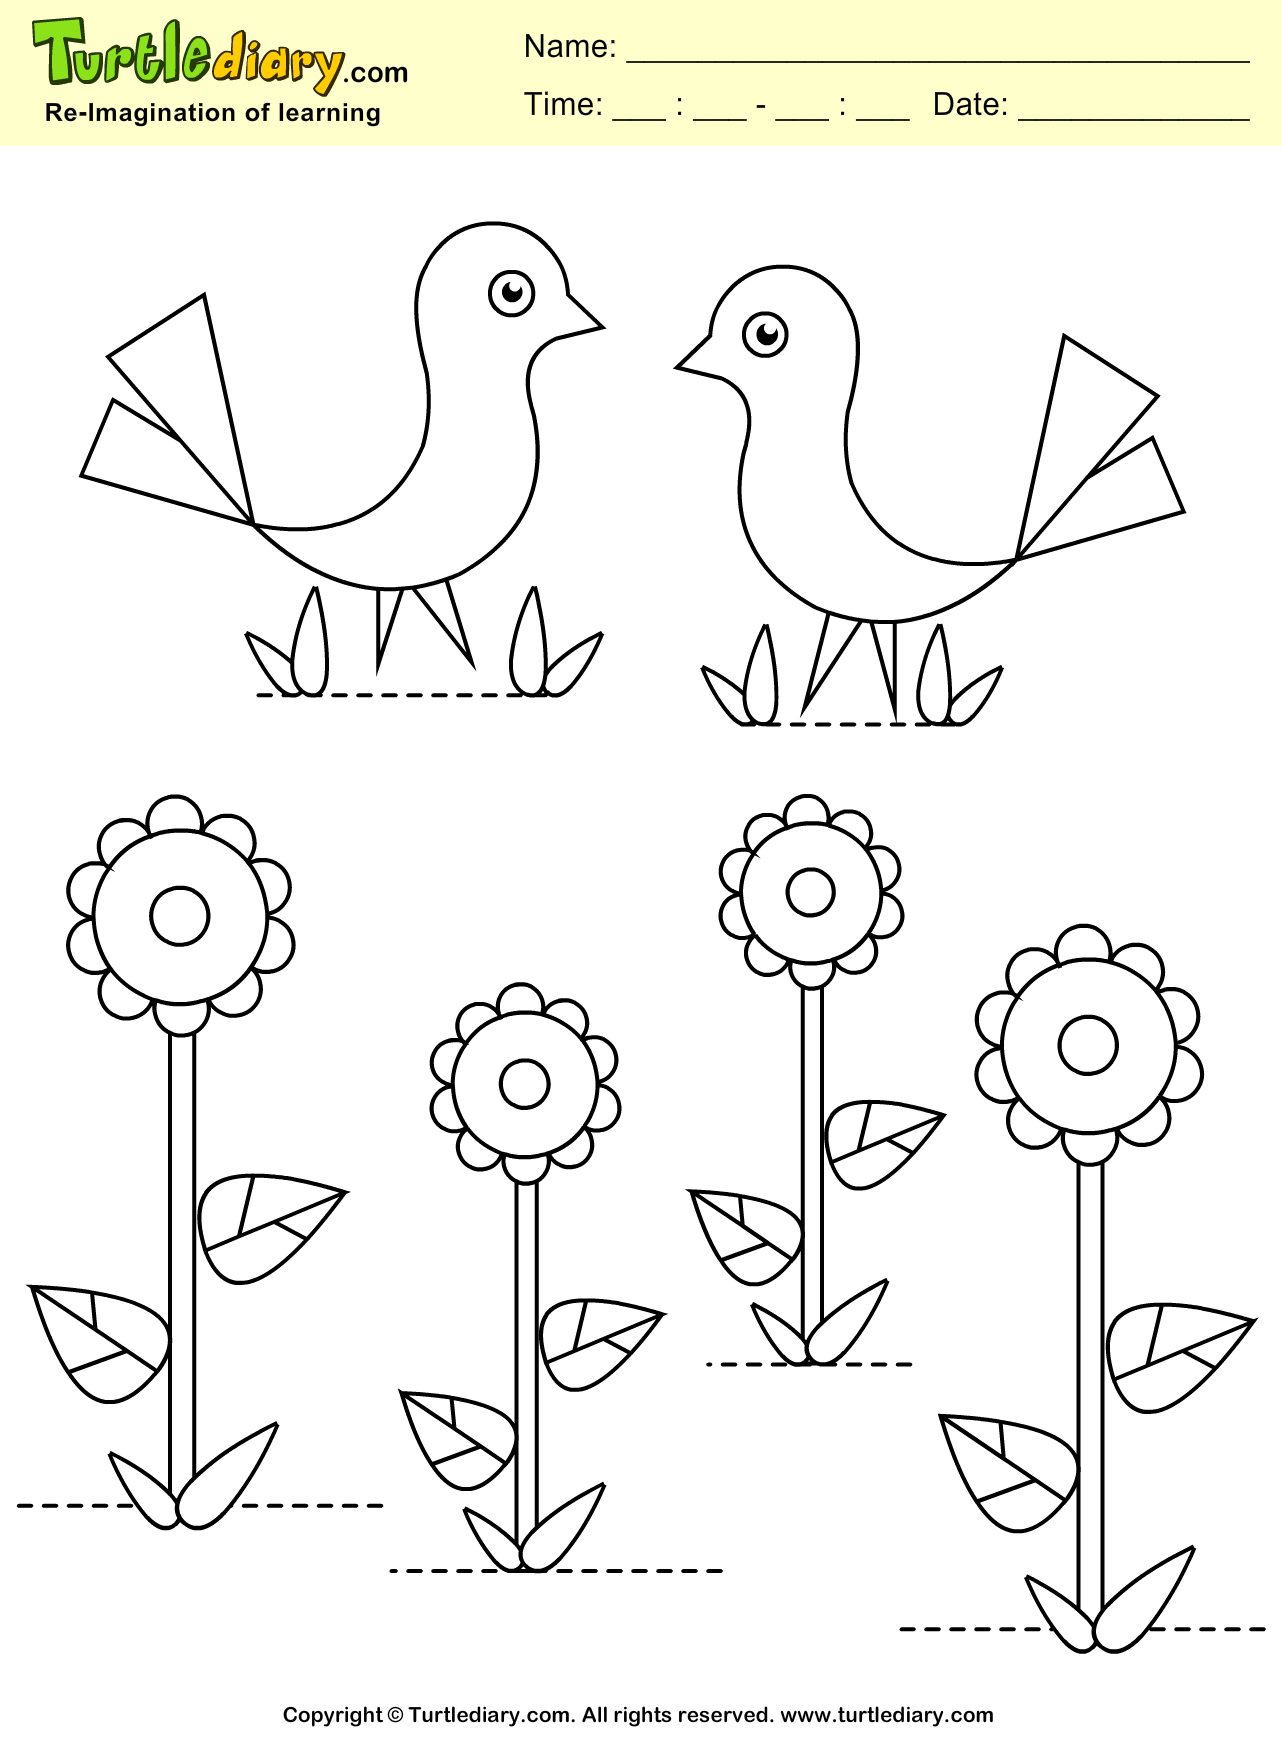 Spring flower coloring sheets - Explore Kids Coloring Coloring Sheets And More Spring Flower